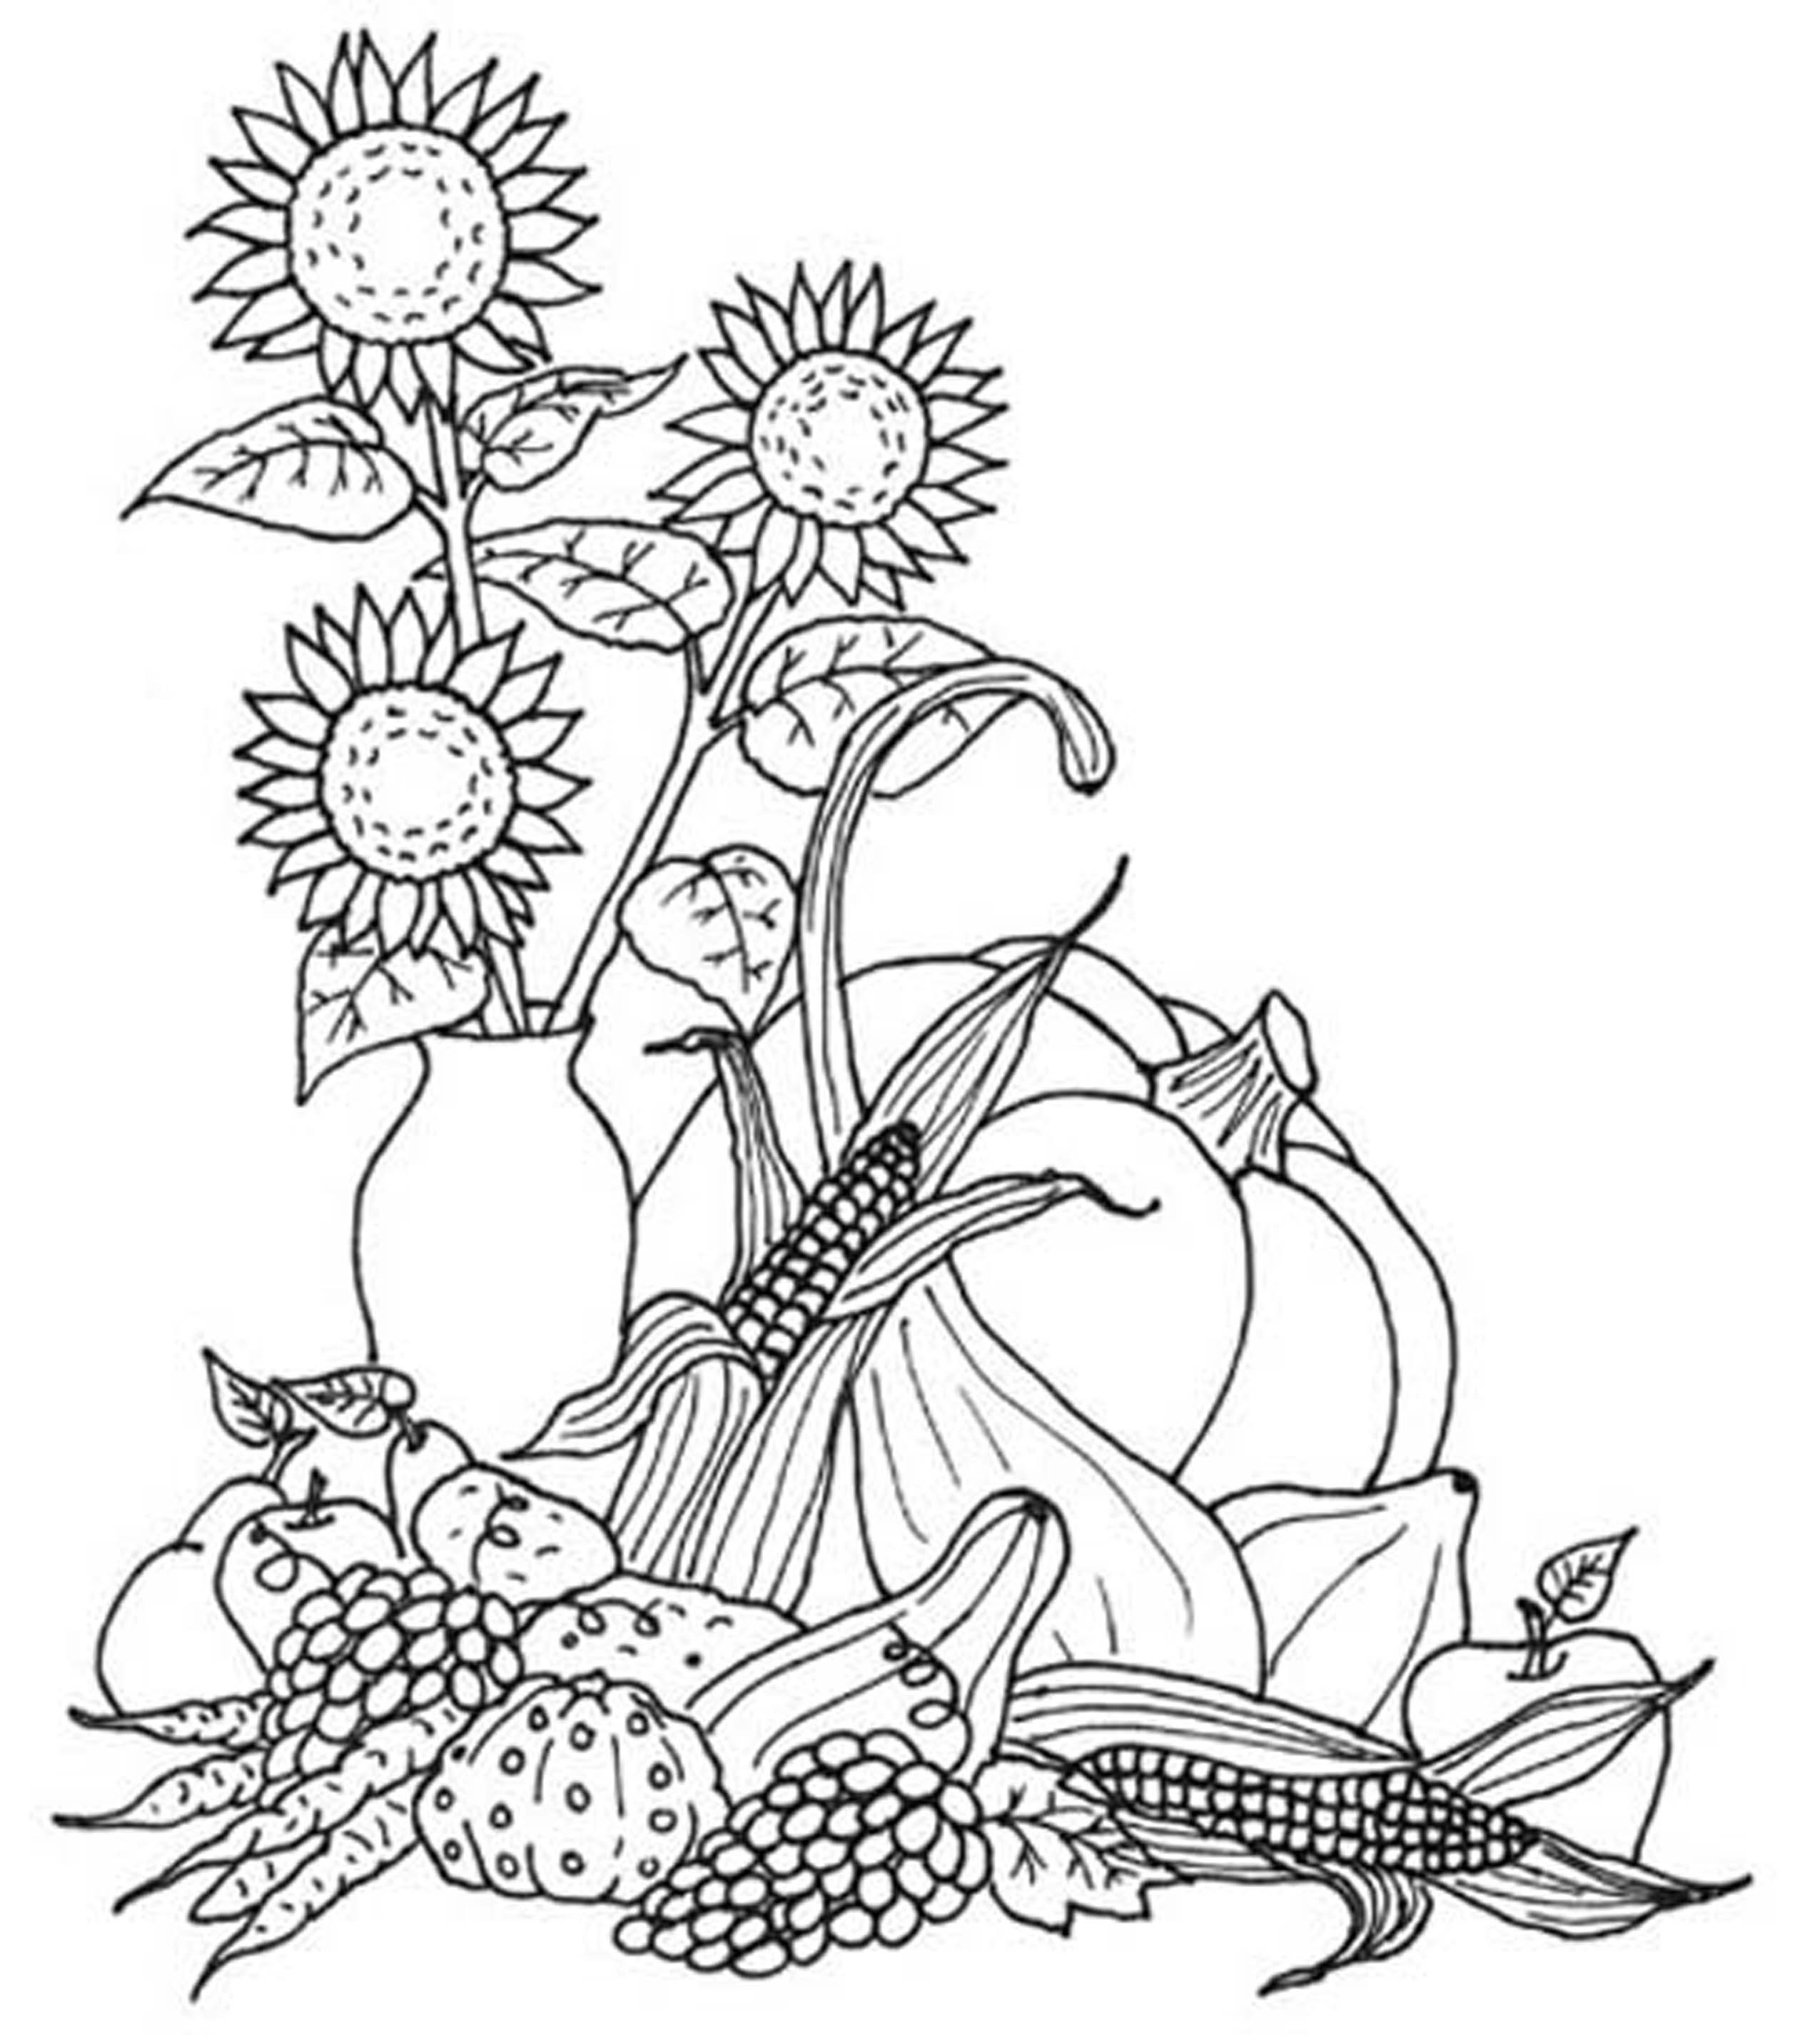 Thanksgiving Turkey with Harvest coloring page | Free Printable ... | 2851x2550